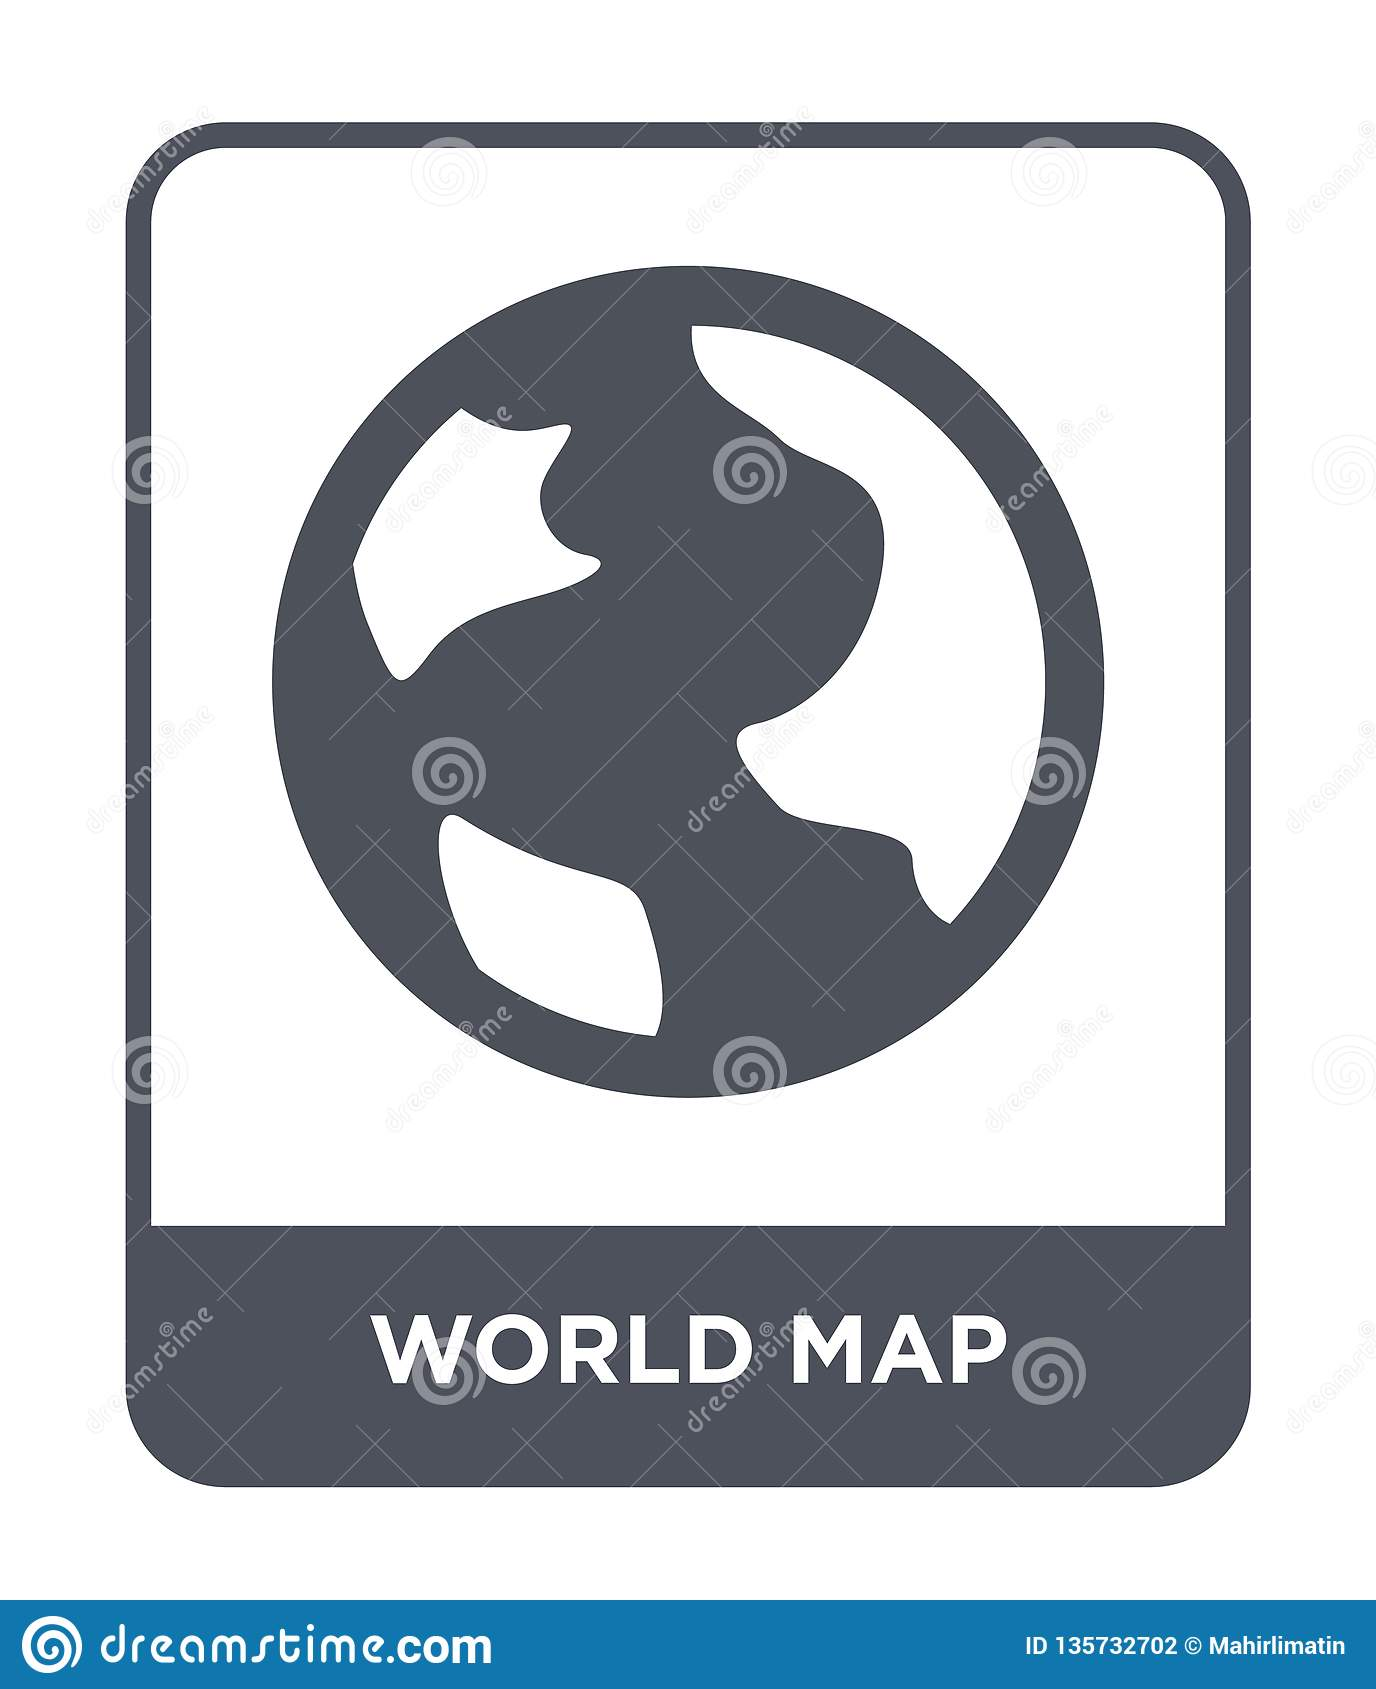 world map icon in trendy design style. world map icon isolated on white background. world map vector icon simple and modern flat